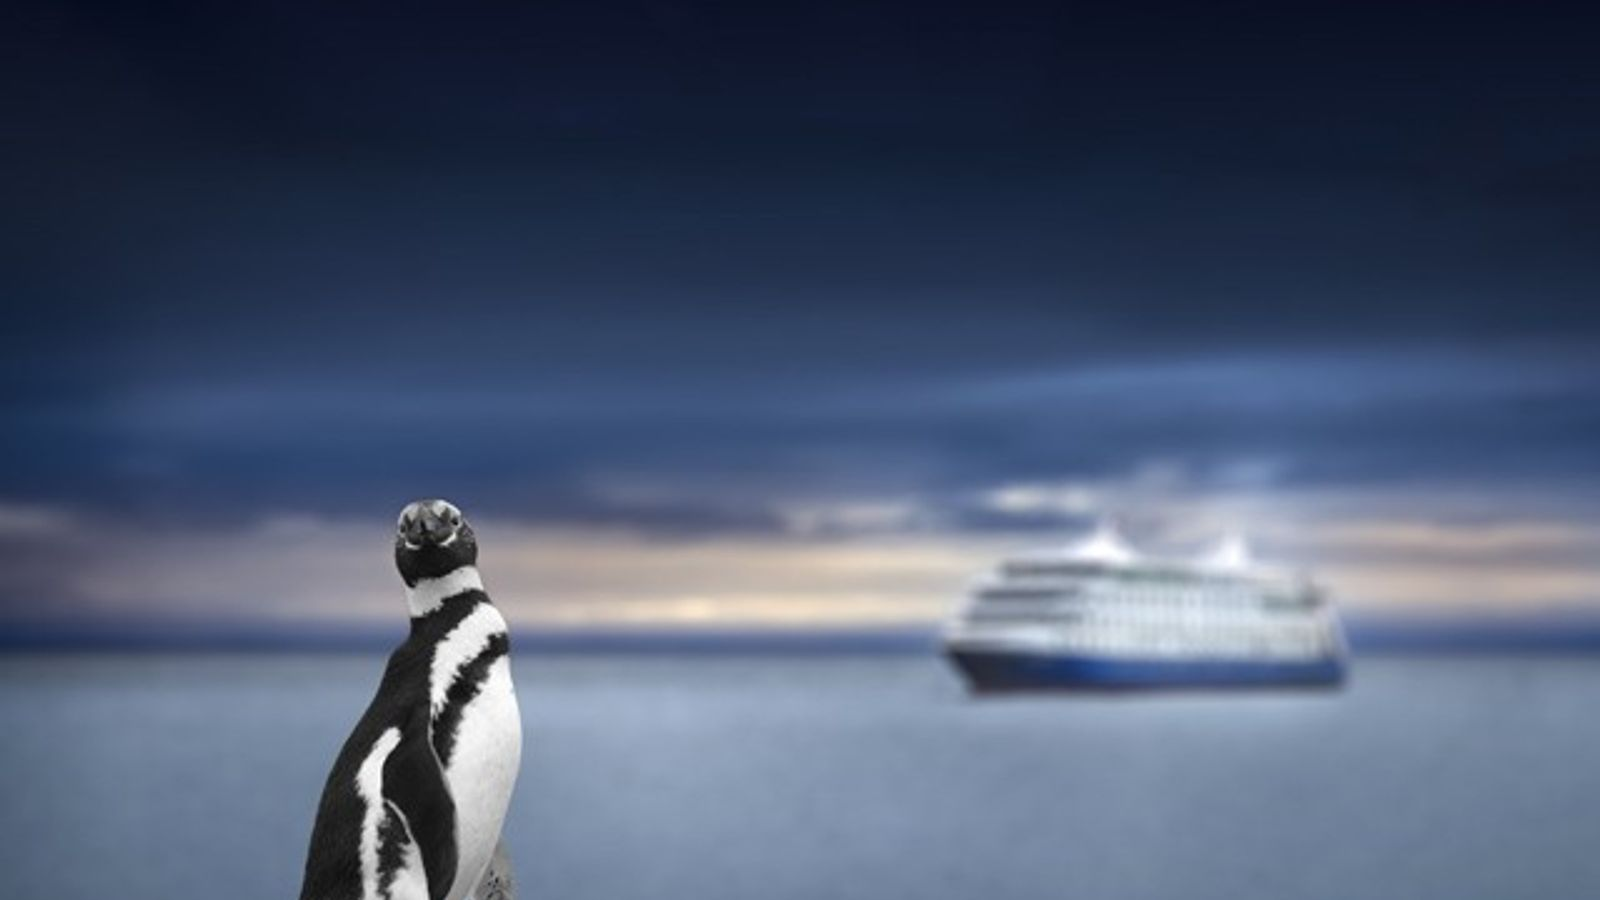 A penguin in front of a cruise ship